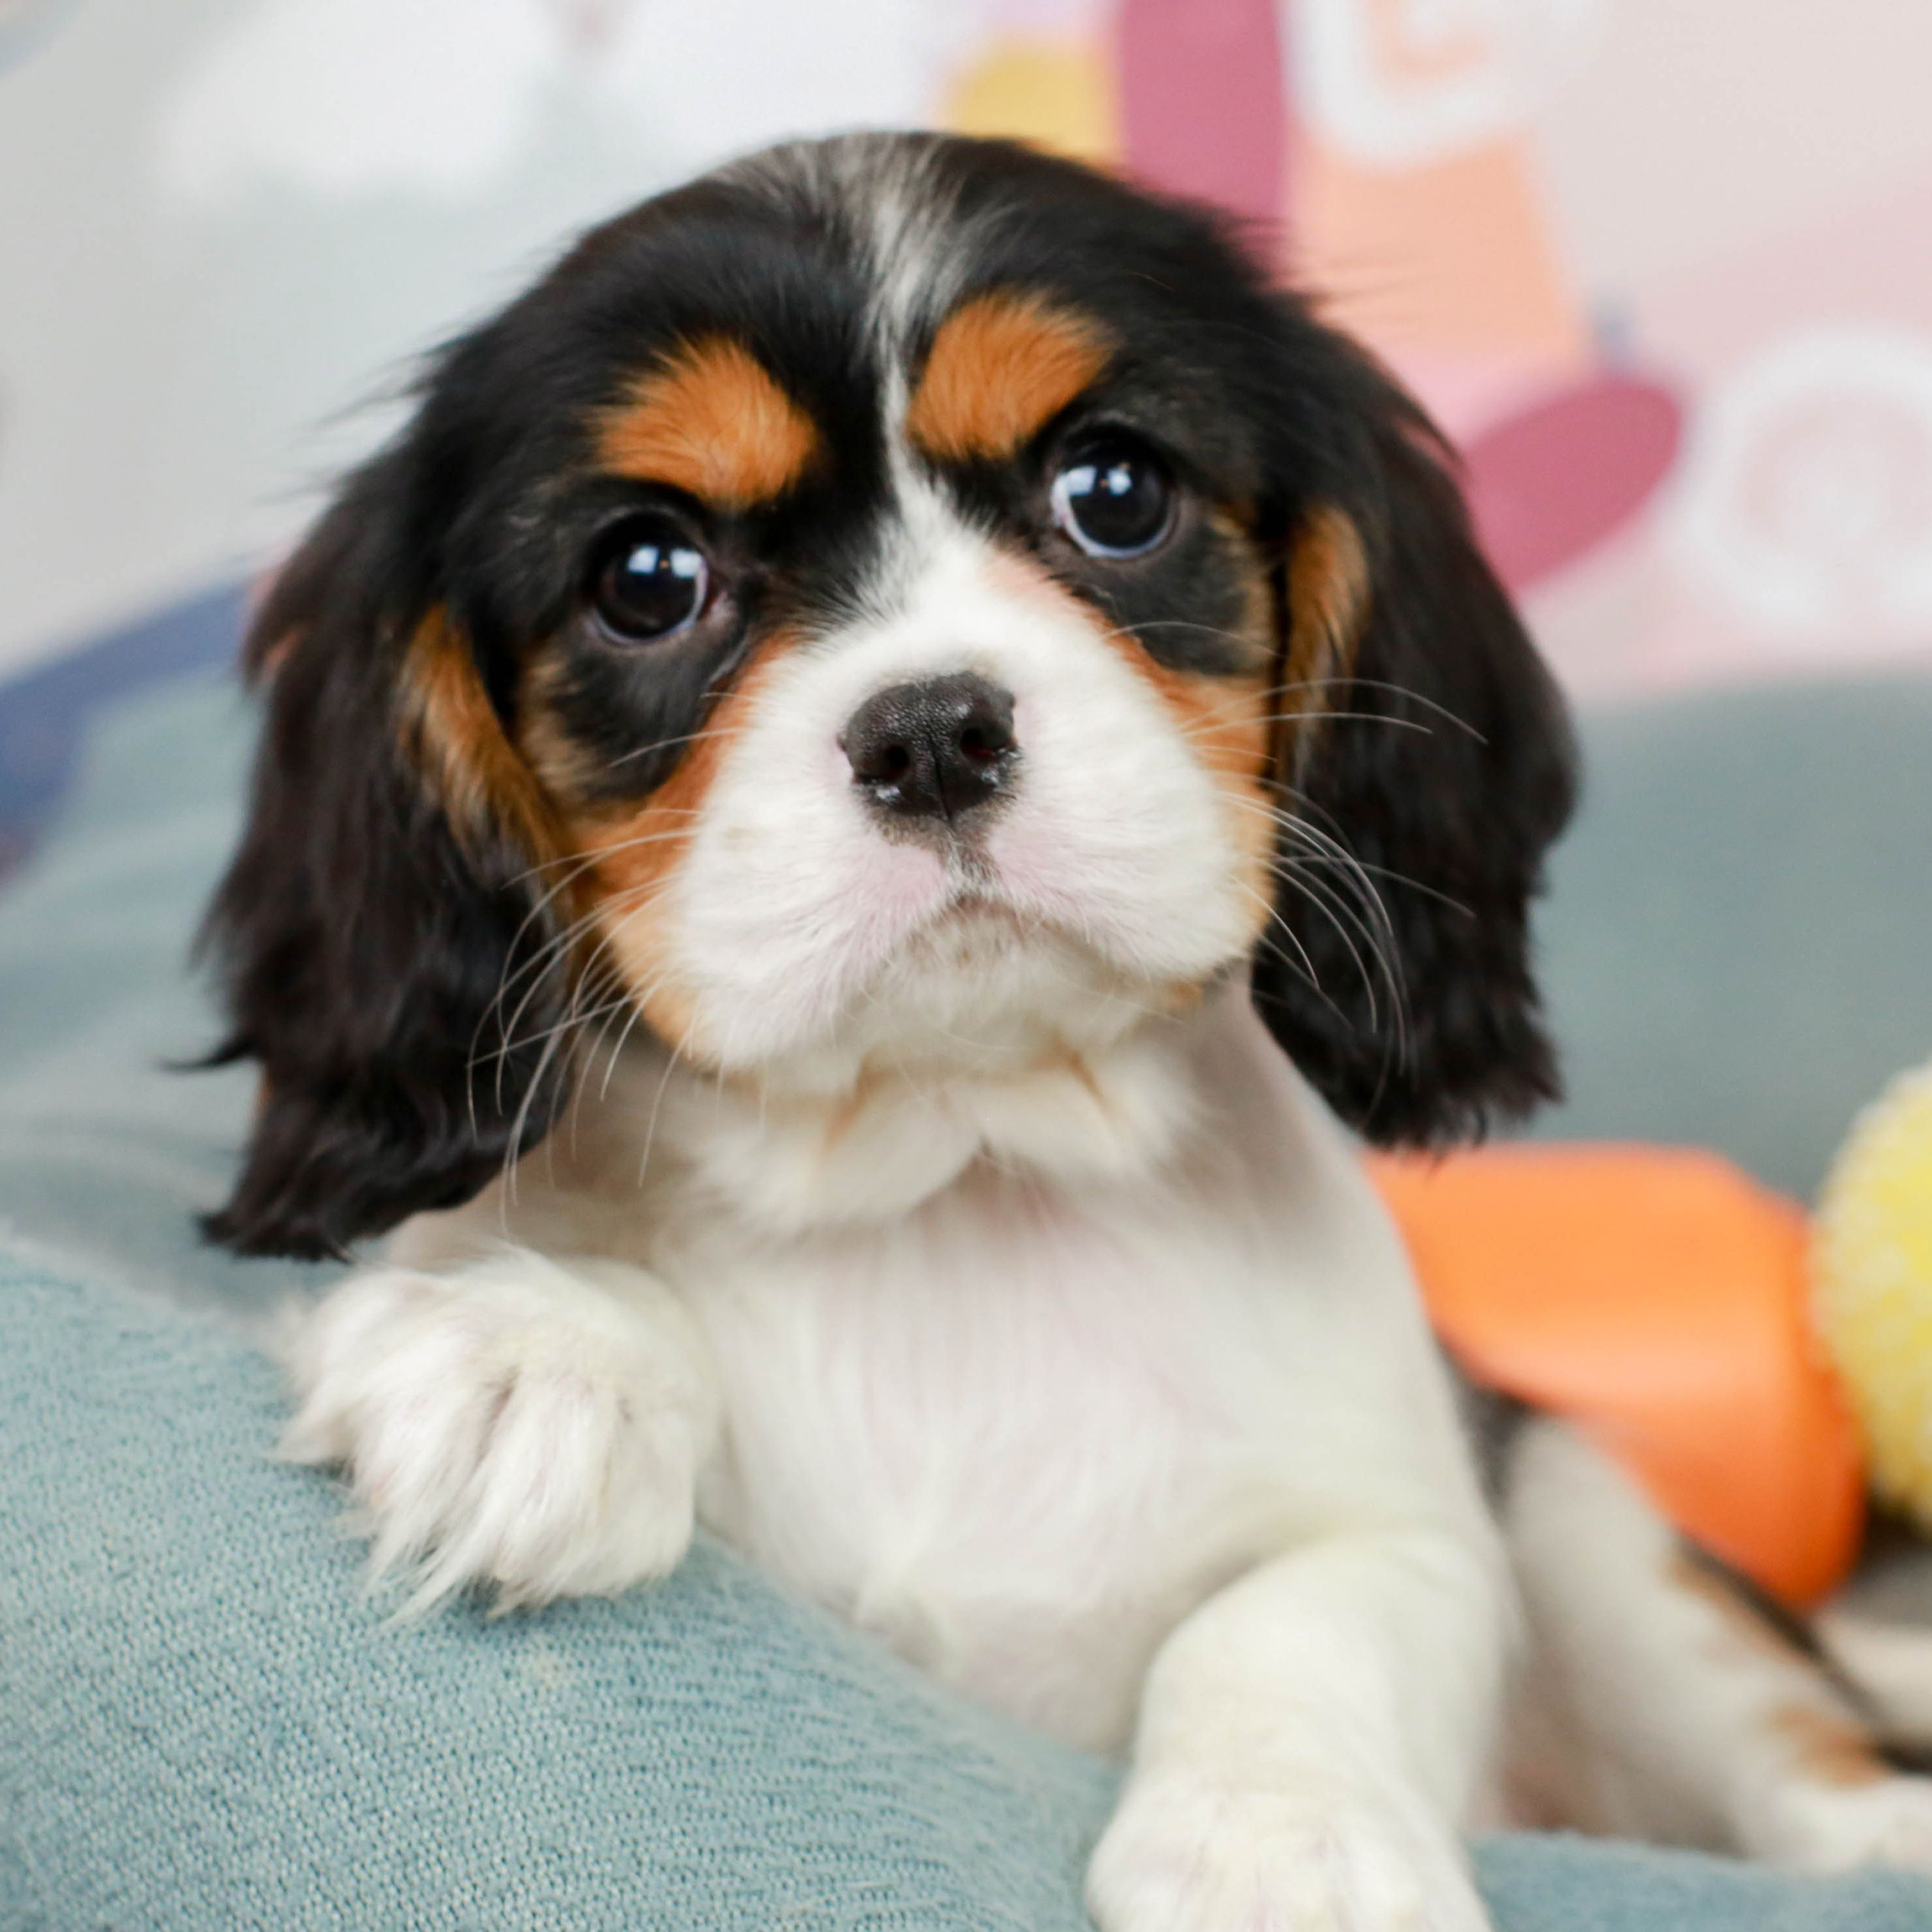 Available Puppies For Sale In 2020 Puppies For Sale Cavalier King Charles Puppies